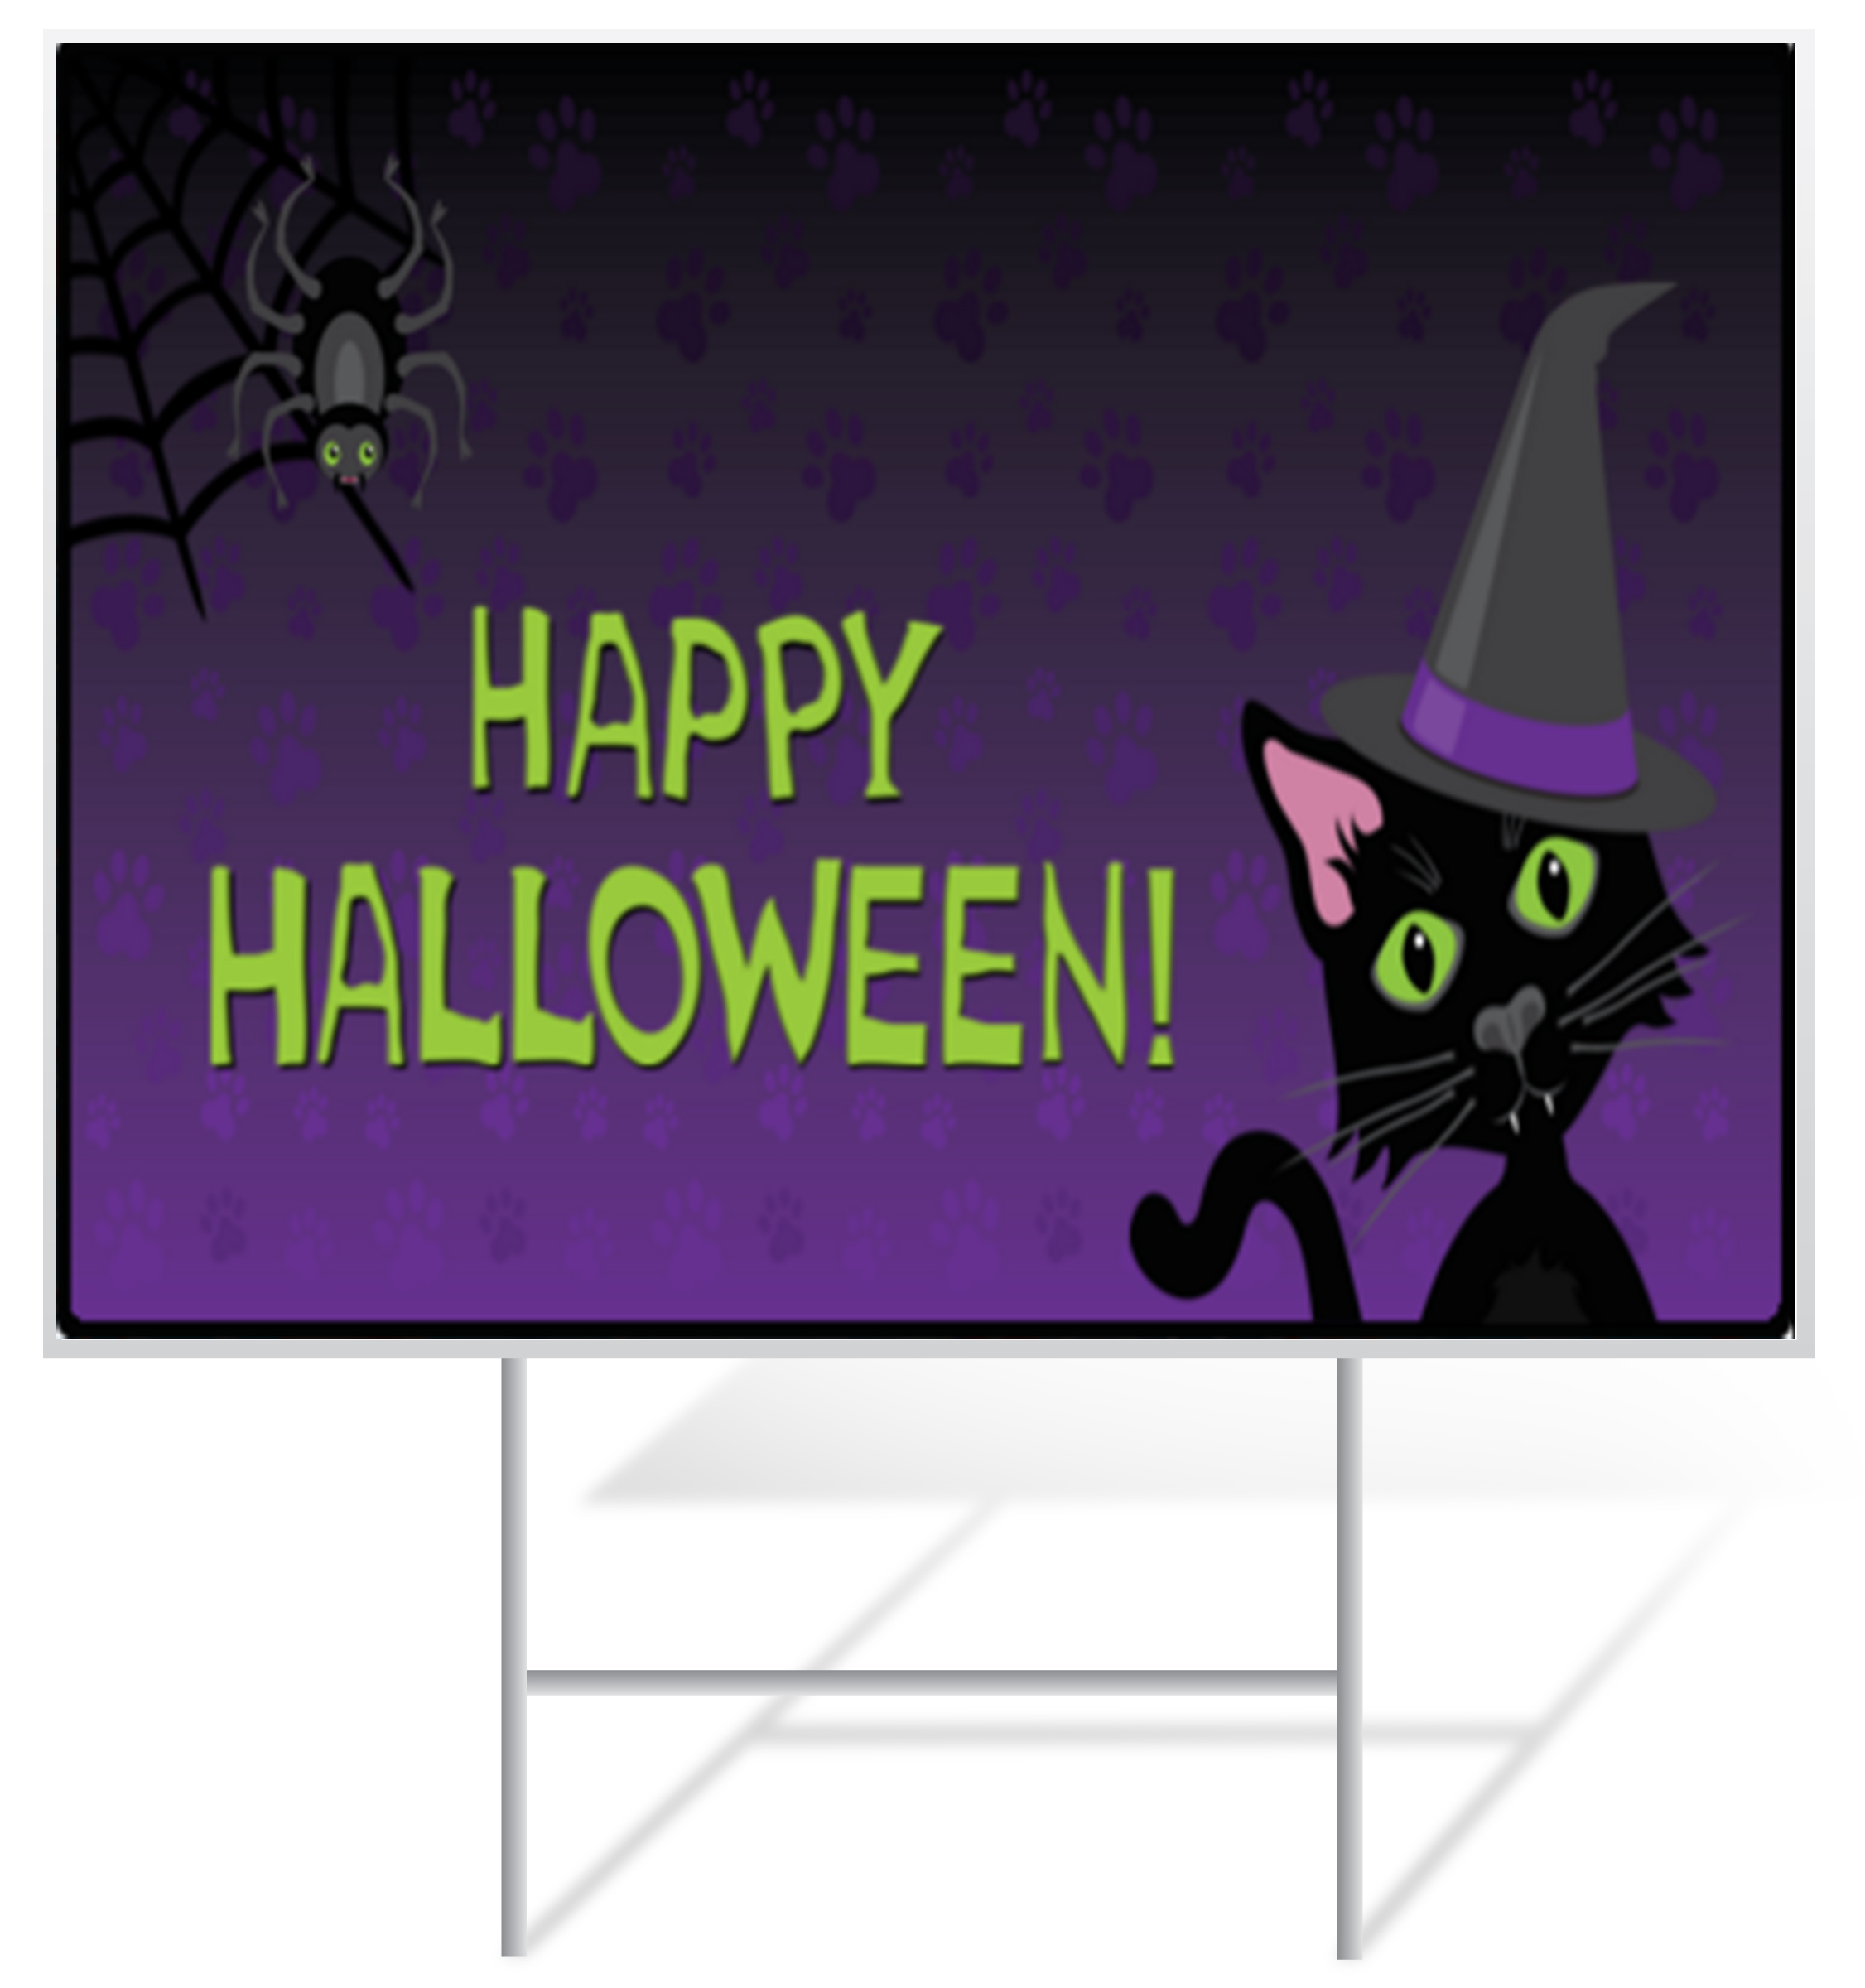 Halloween Lawn Sign Example | LawnSigns.com